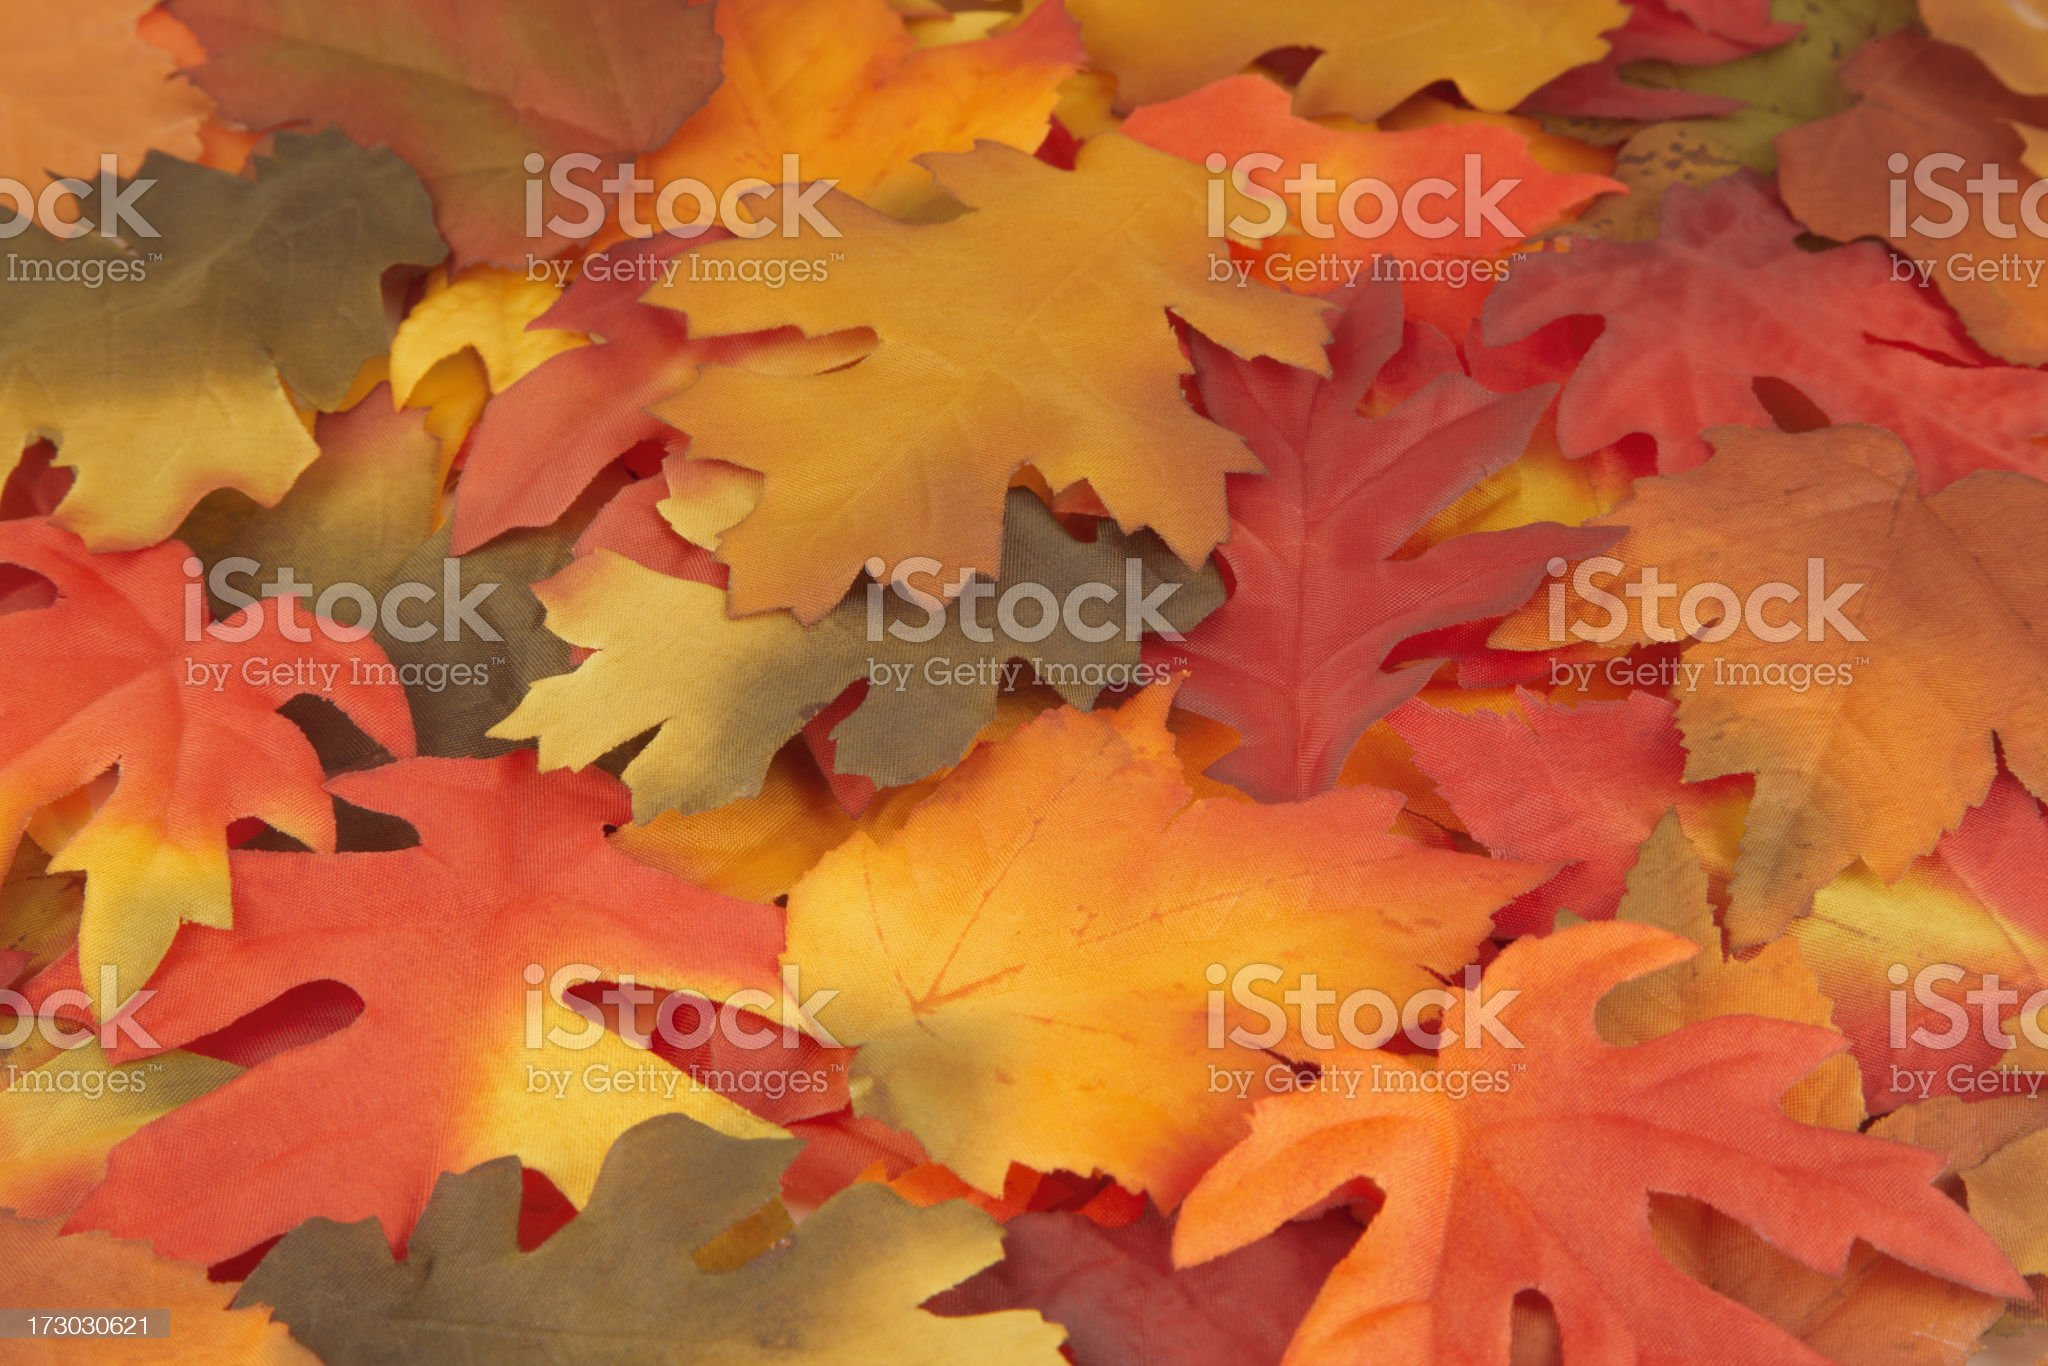 Fall Leaf Arrangement, Autumn, Harvest, Natural Pattern, Colorful Background royalty-free stock photo